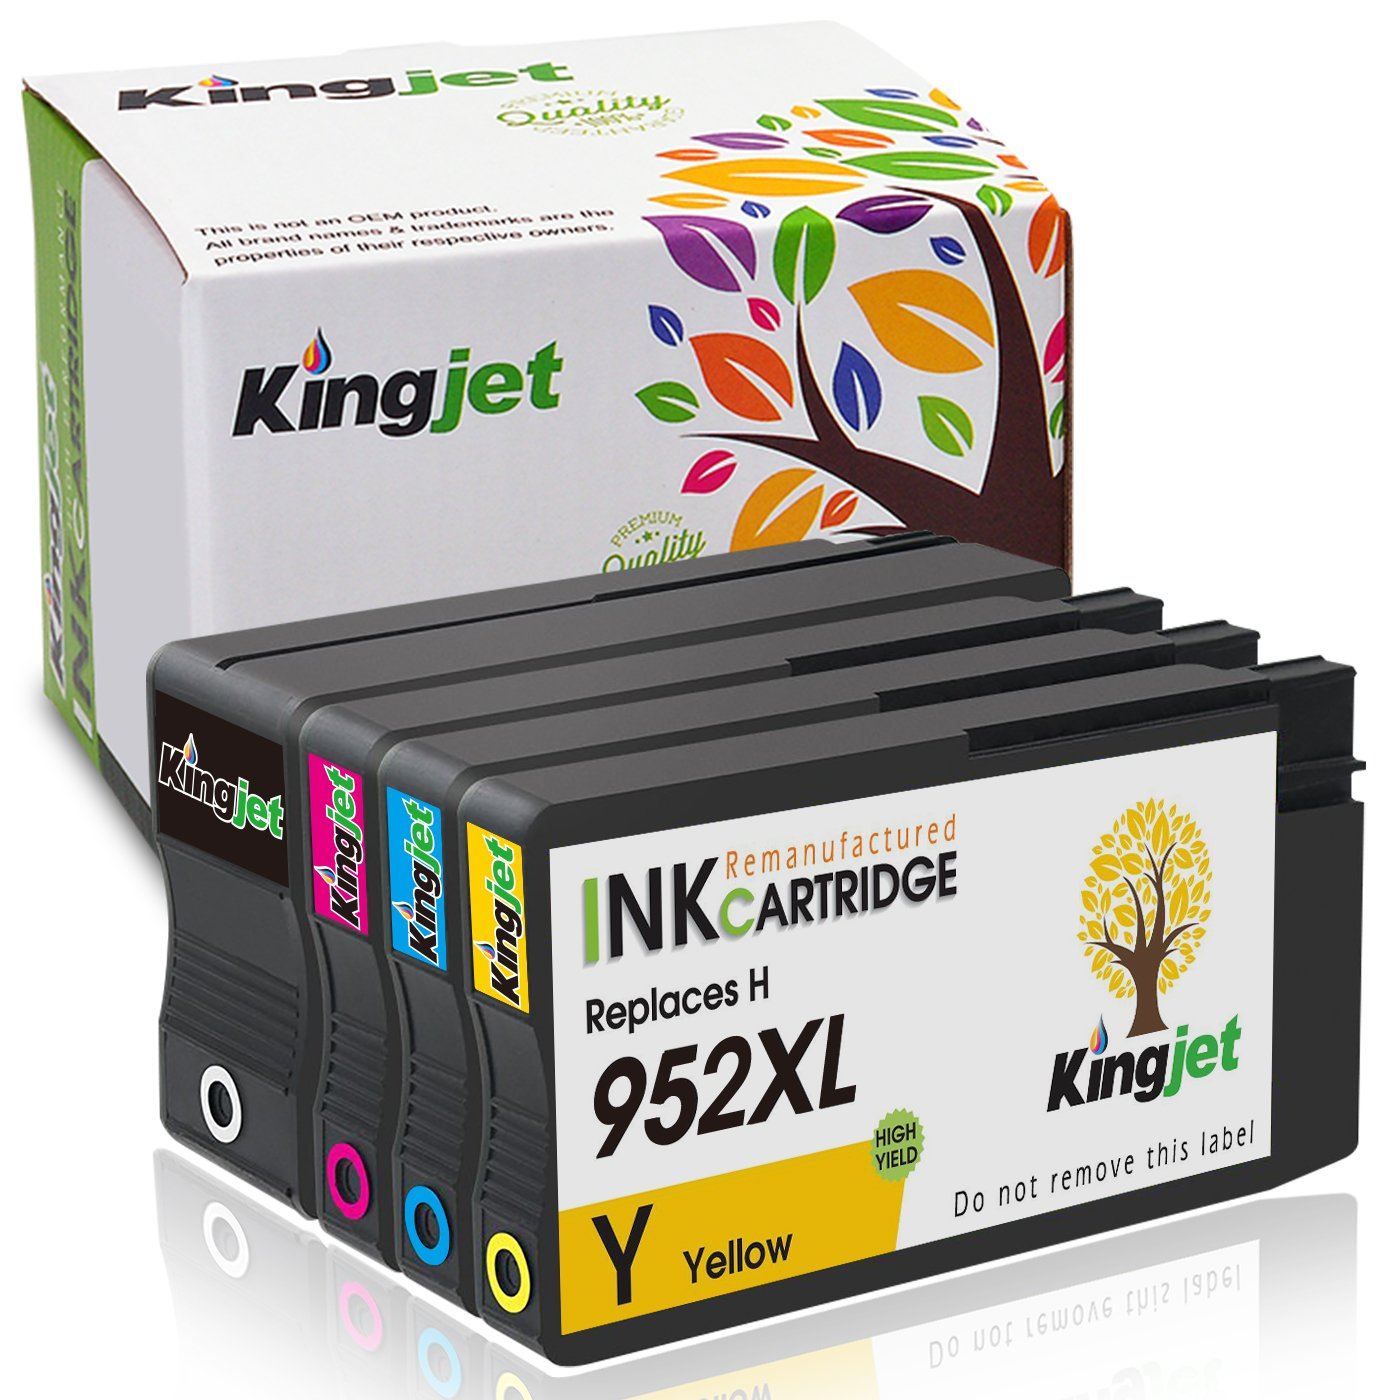 Kingjet Re-Manufactured Ink Cartridge Replacement for 952XL Work with Officejet Pro 7740 8210 8216 8702 8710 8715 8720 8725 8730 8740 Printers, 1Set (1Black 1Cyan 1Magenta 1Yellow)